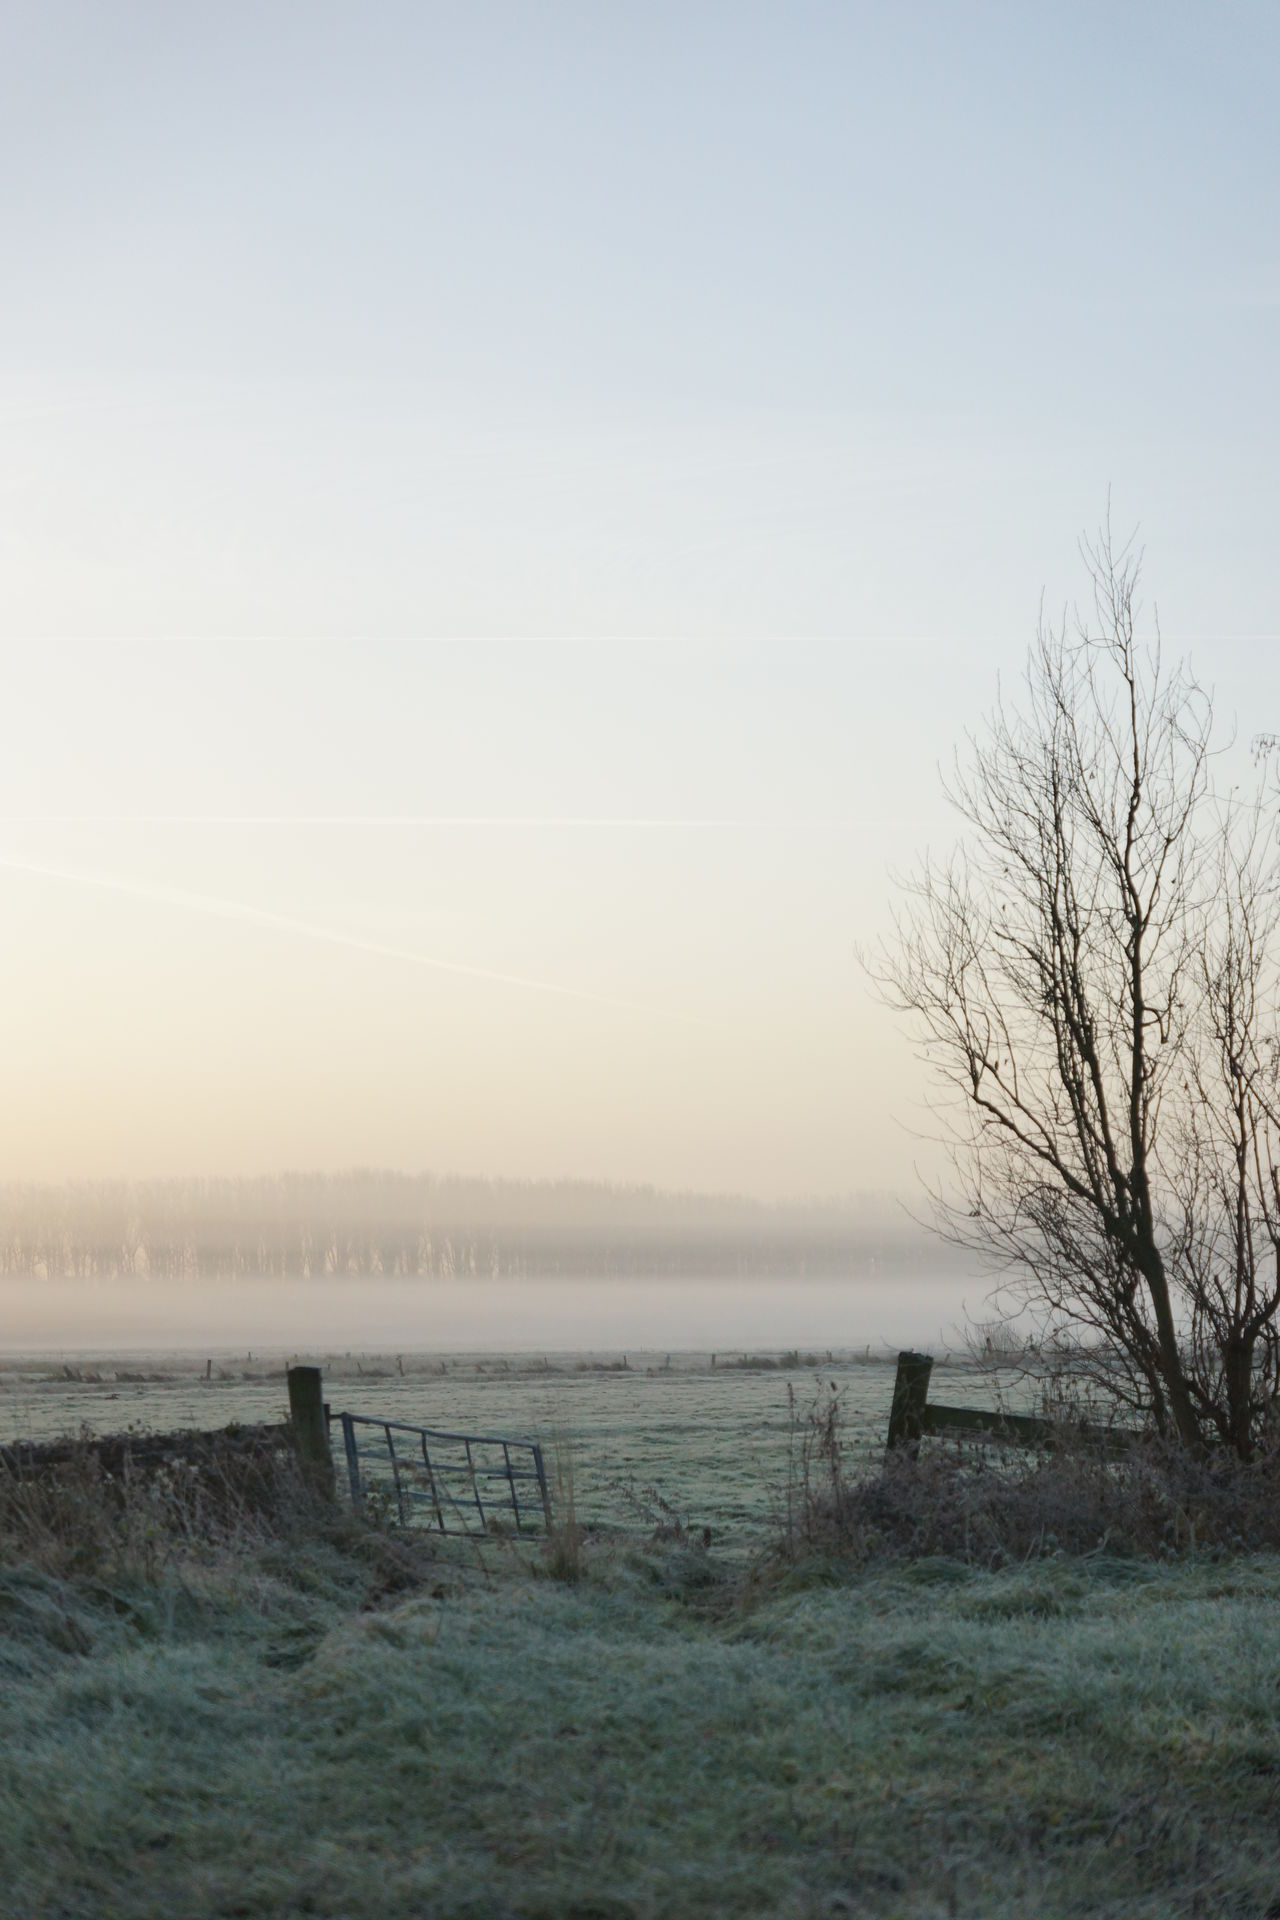 Winter pasture Bare Tree Beauty In Nature Clear Sky Day Field Fog Foggy Frost Gate Grass Haze Landscape Meadow Morning Morning Light Nature No People Outdoors Scenics Sky Sunrise Tranquil Scene Tranquility Tree Winter